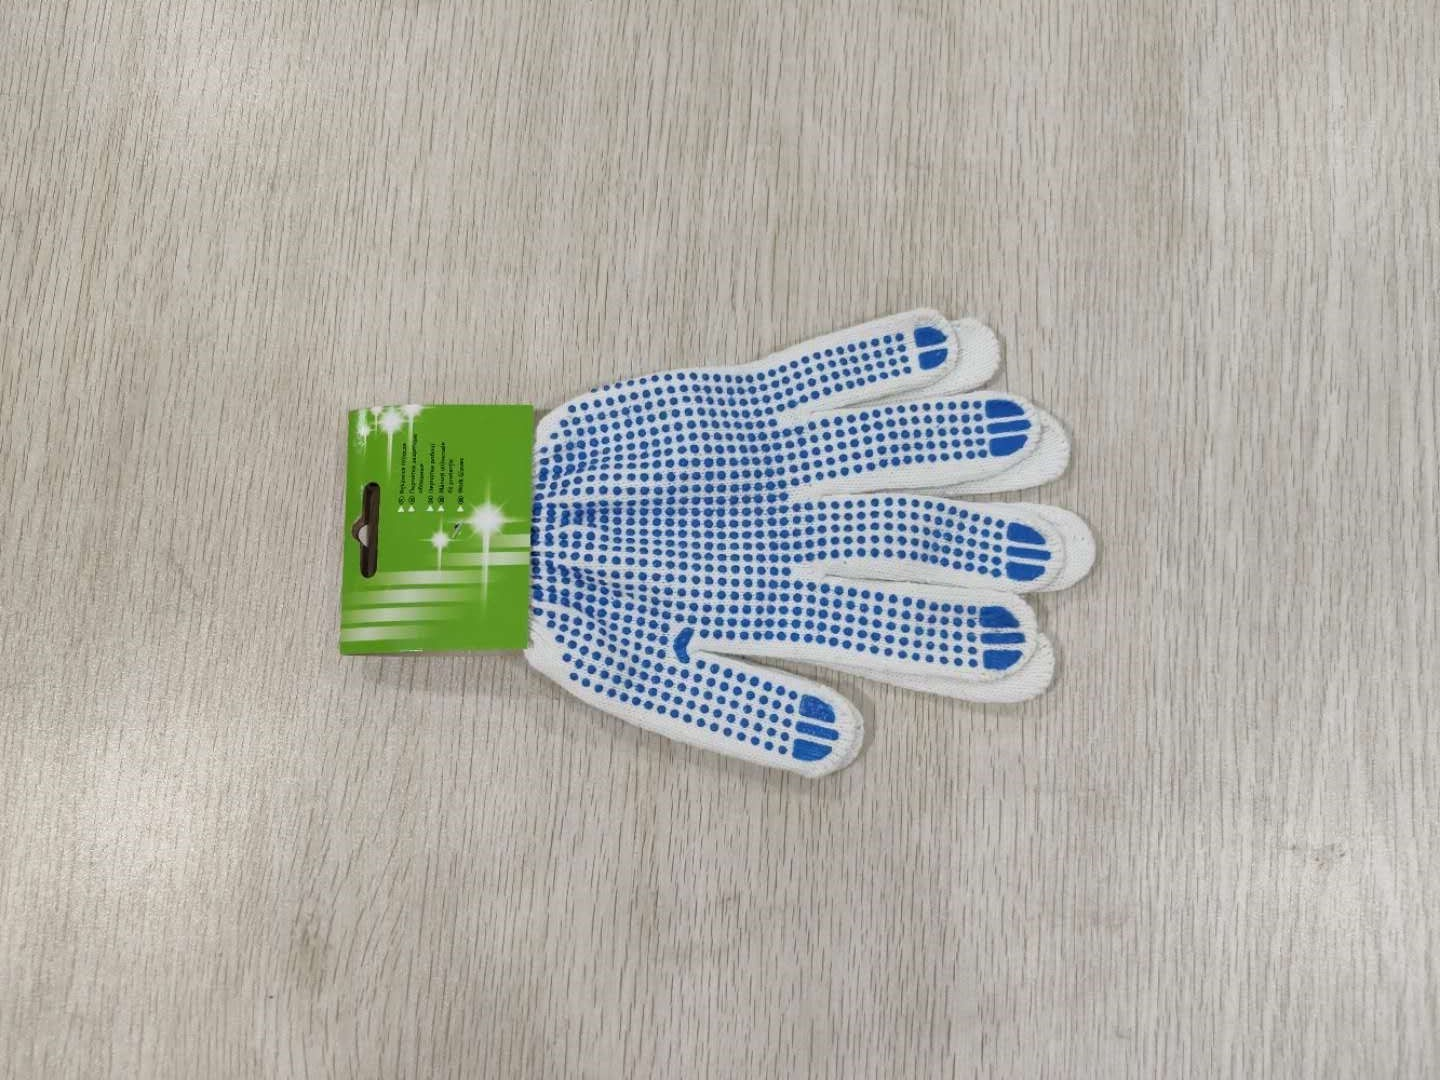 Cotton Material Working Glove 80 Grams Cotton In 13 Gauge For Construction